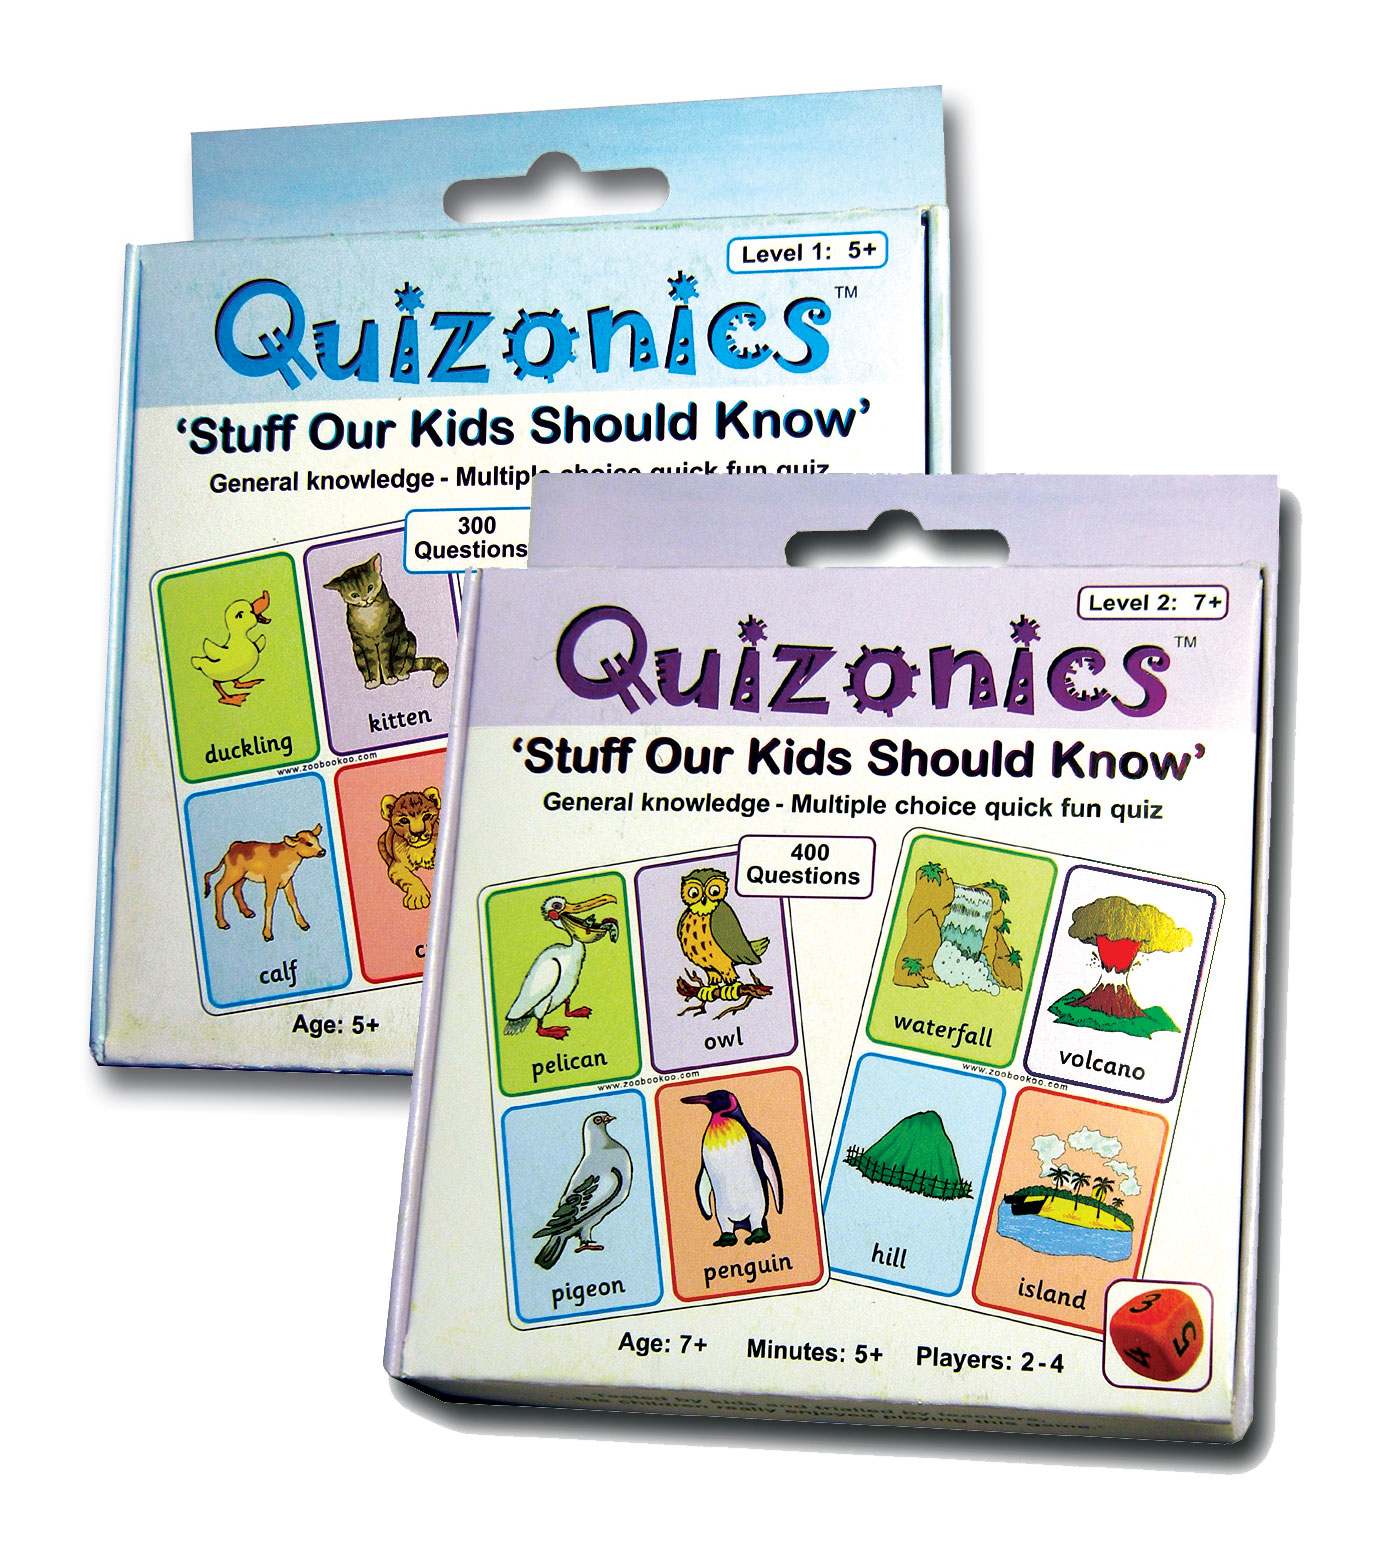 Quizonics - reviewed for What To Do With The Kids - What To